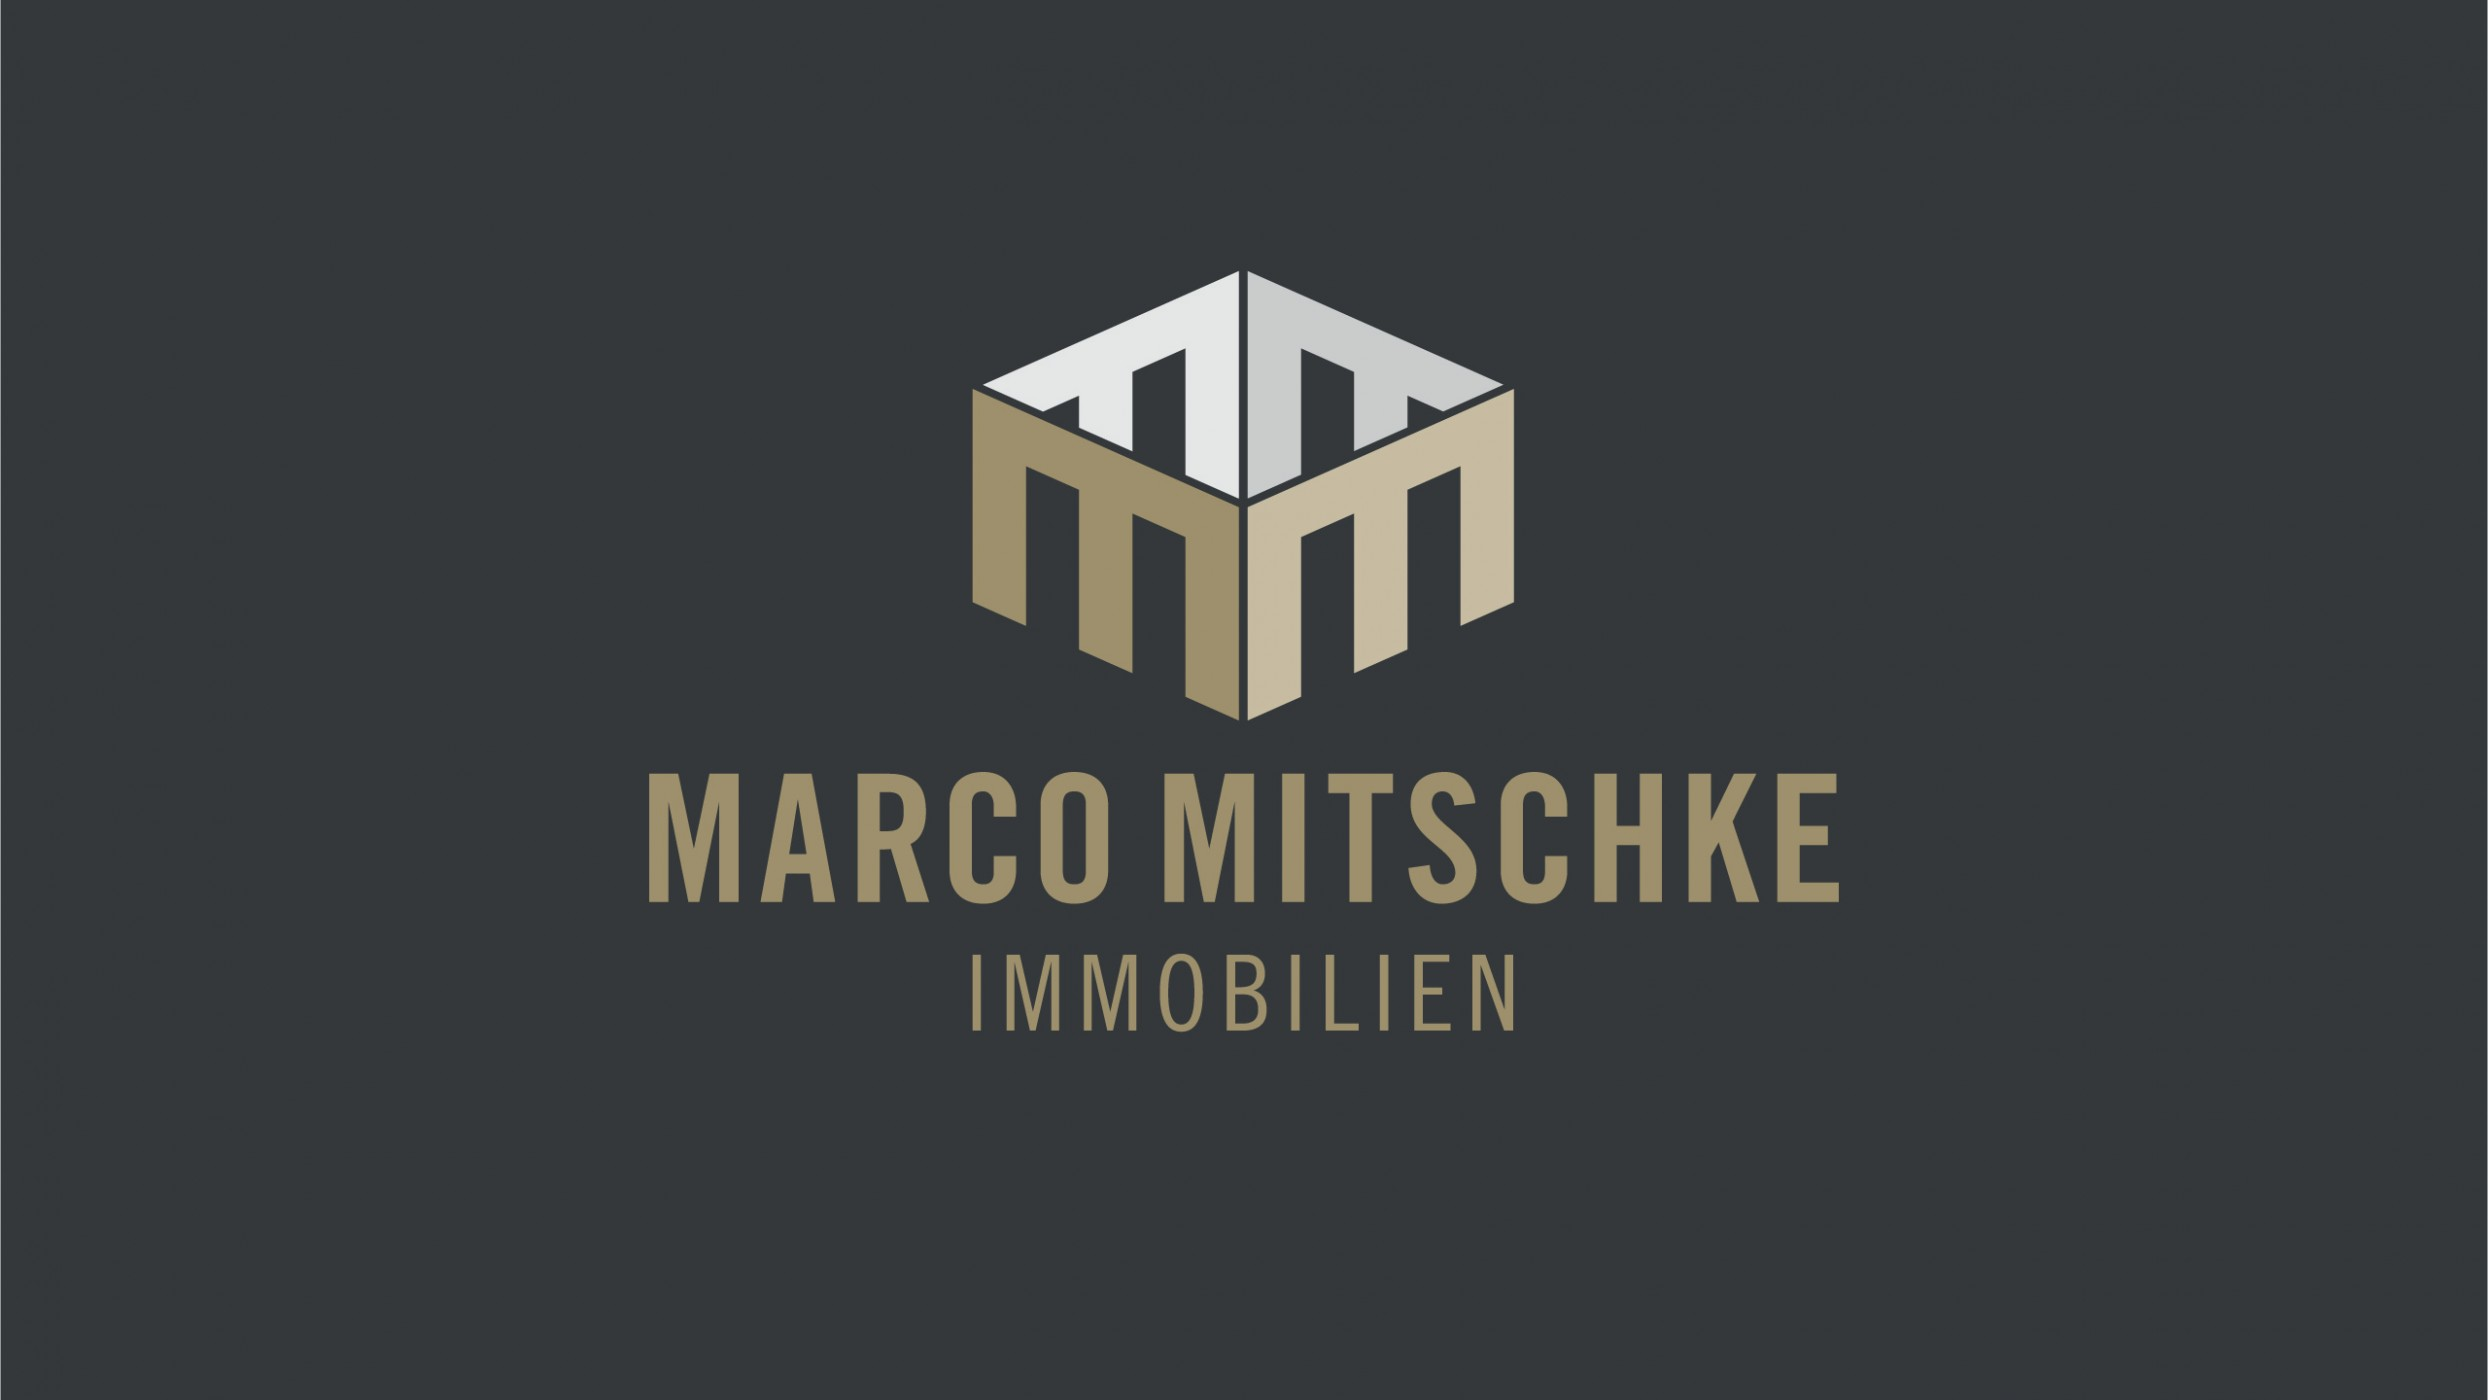 mitschke_immobilien_corporate_design-01